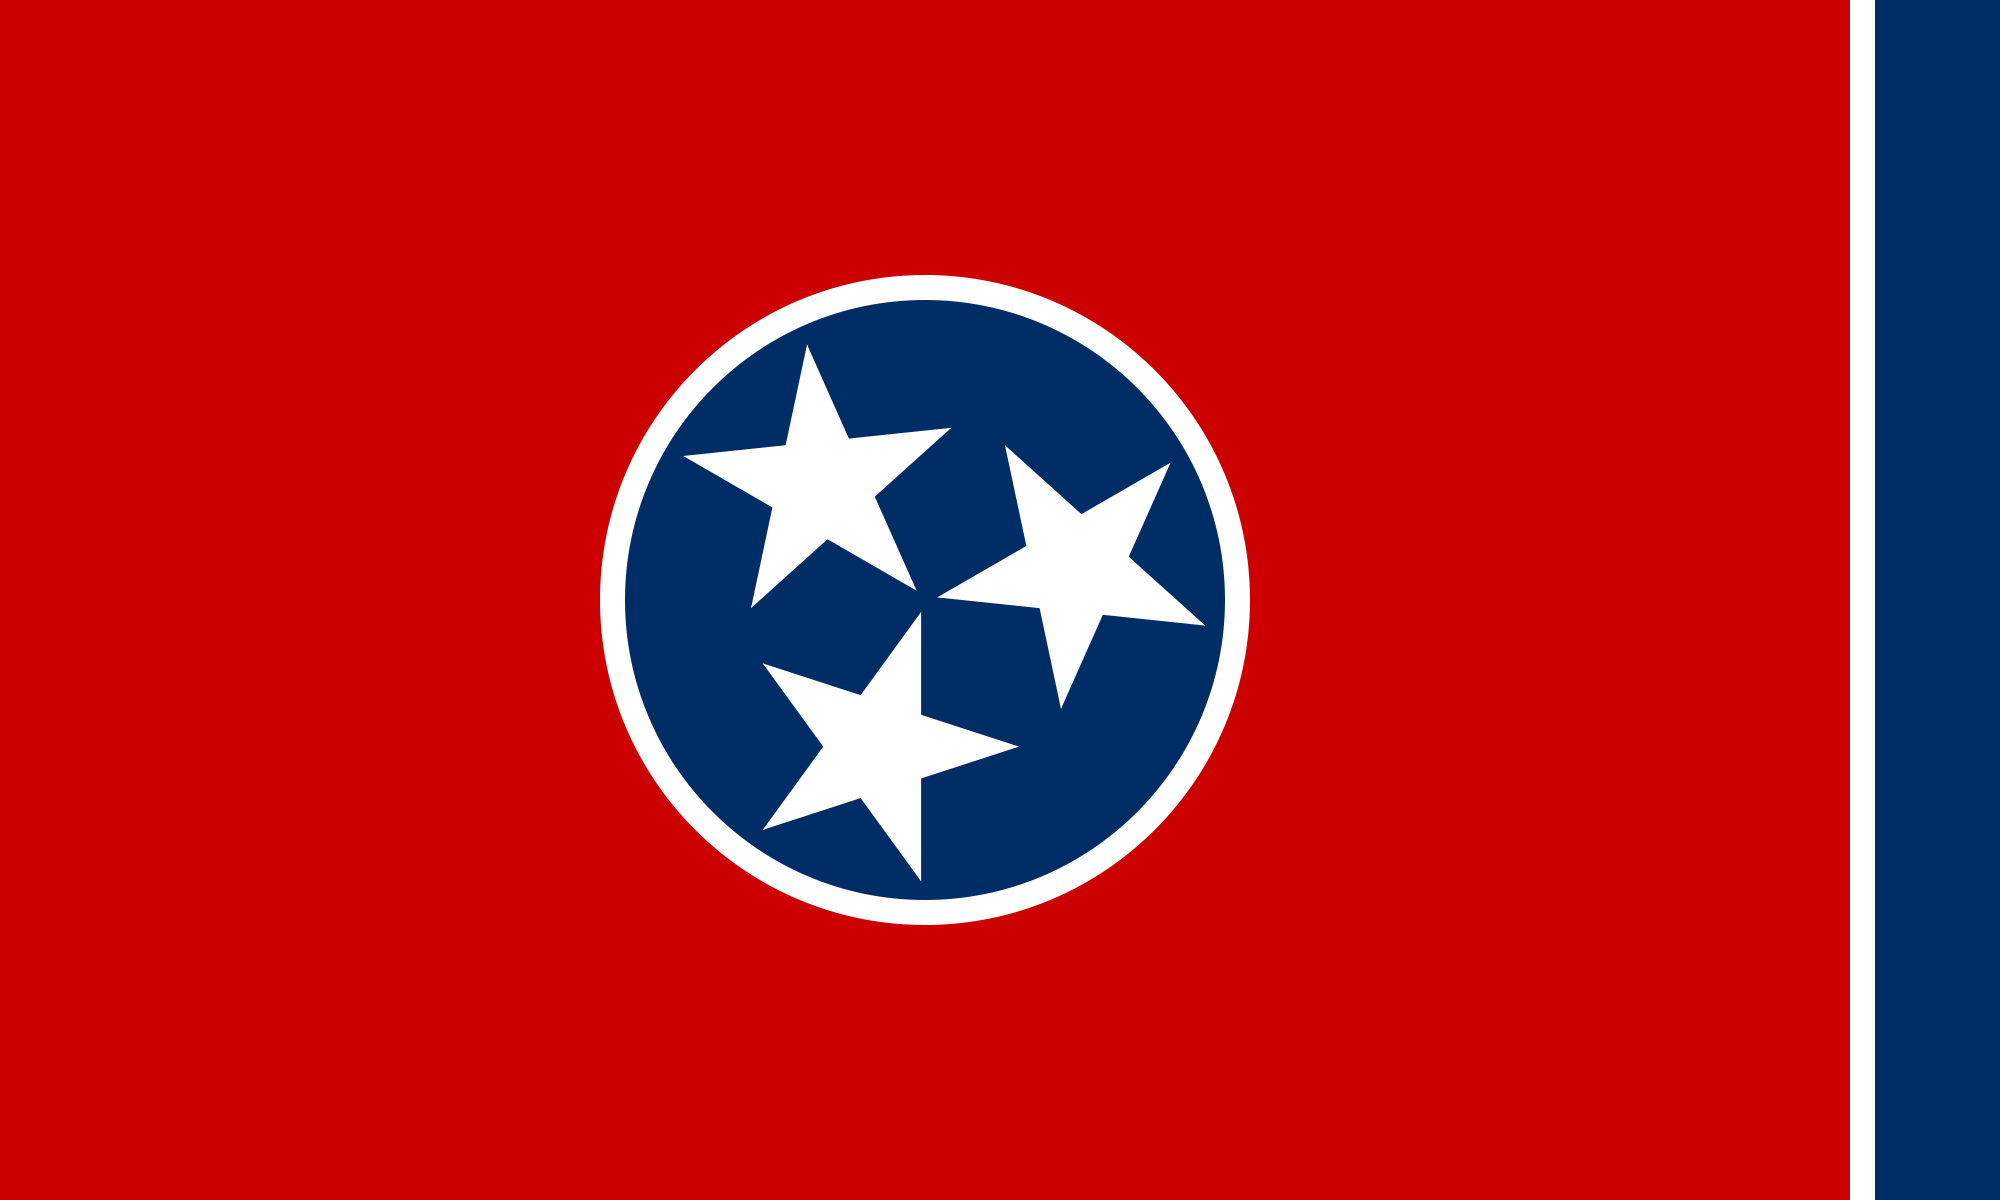 Tennessee License Plates